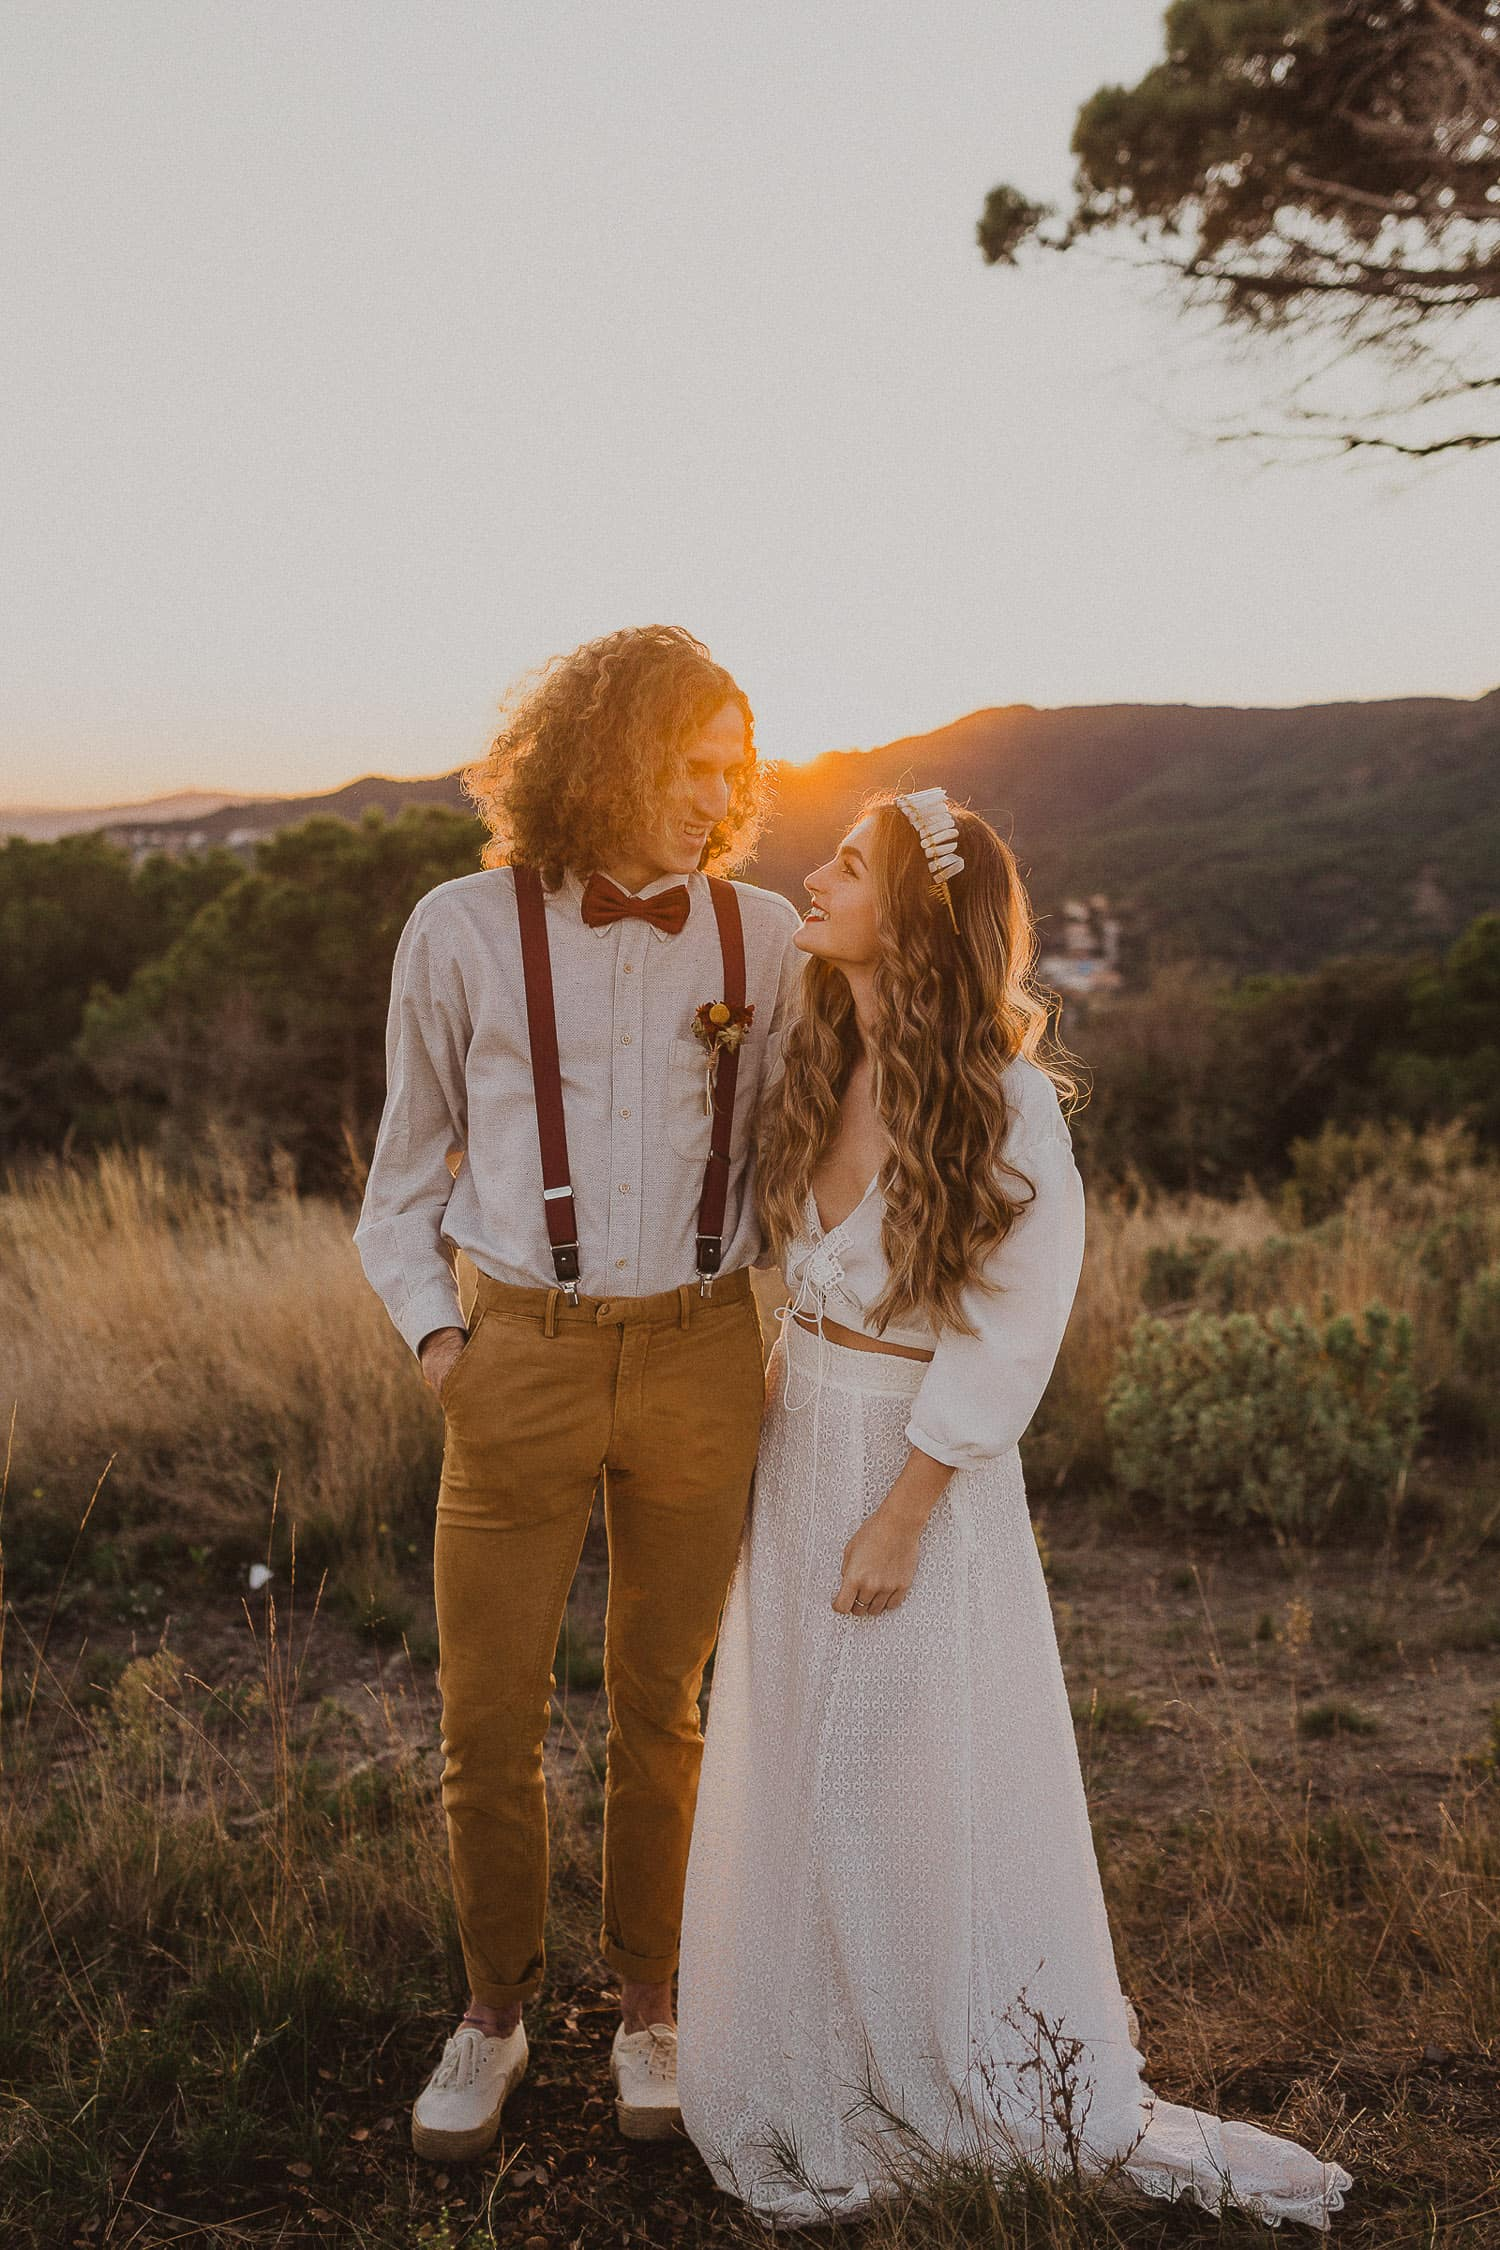 Sunset elopement in Catalonia